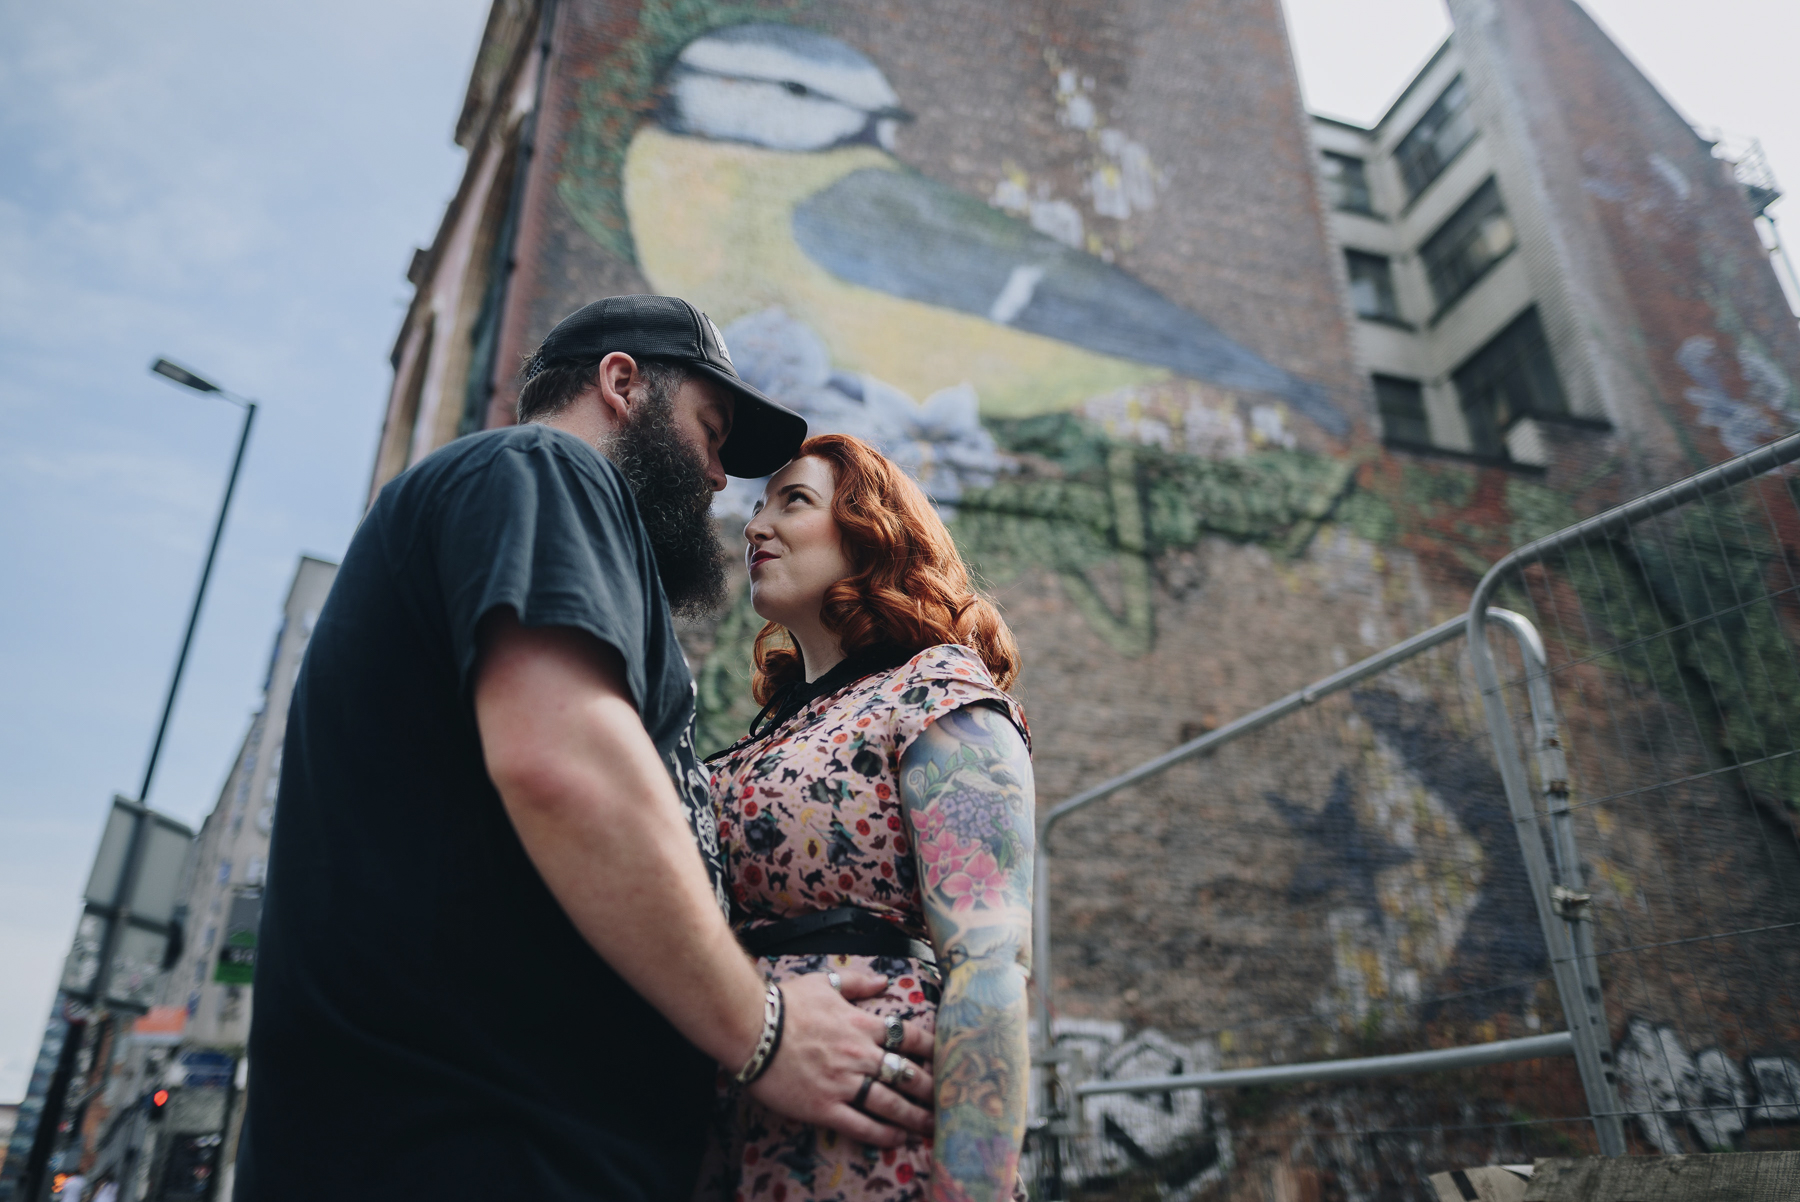 Manchester_Engagement_Photography_Northers_Quarter_The_Pin-Up_Bride-52.jpg